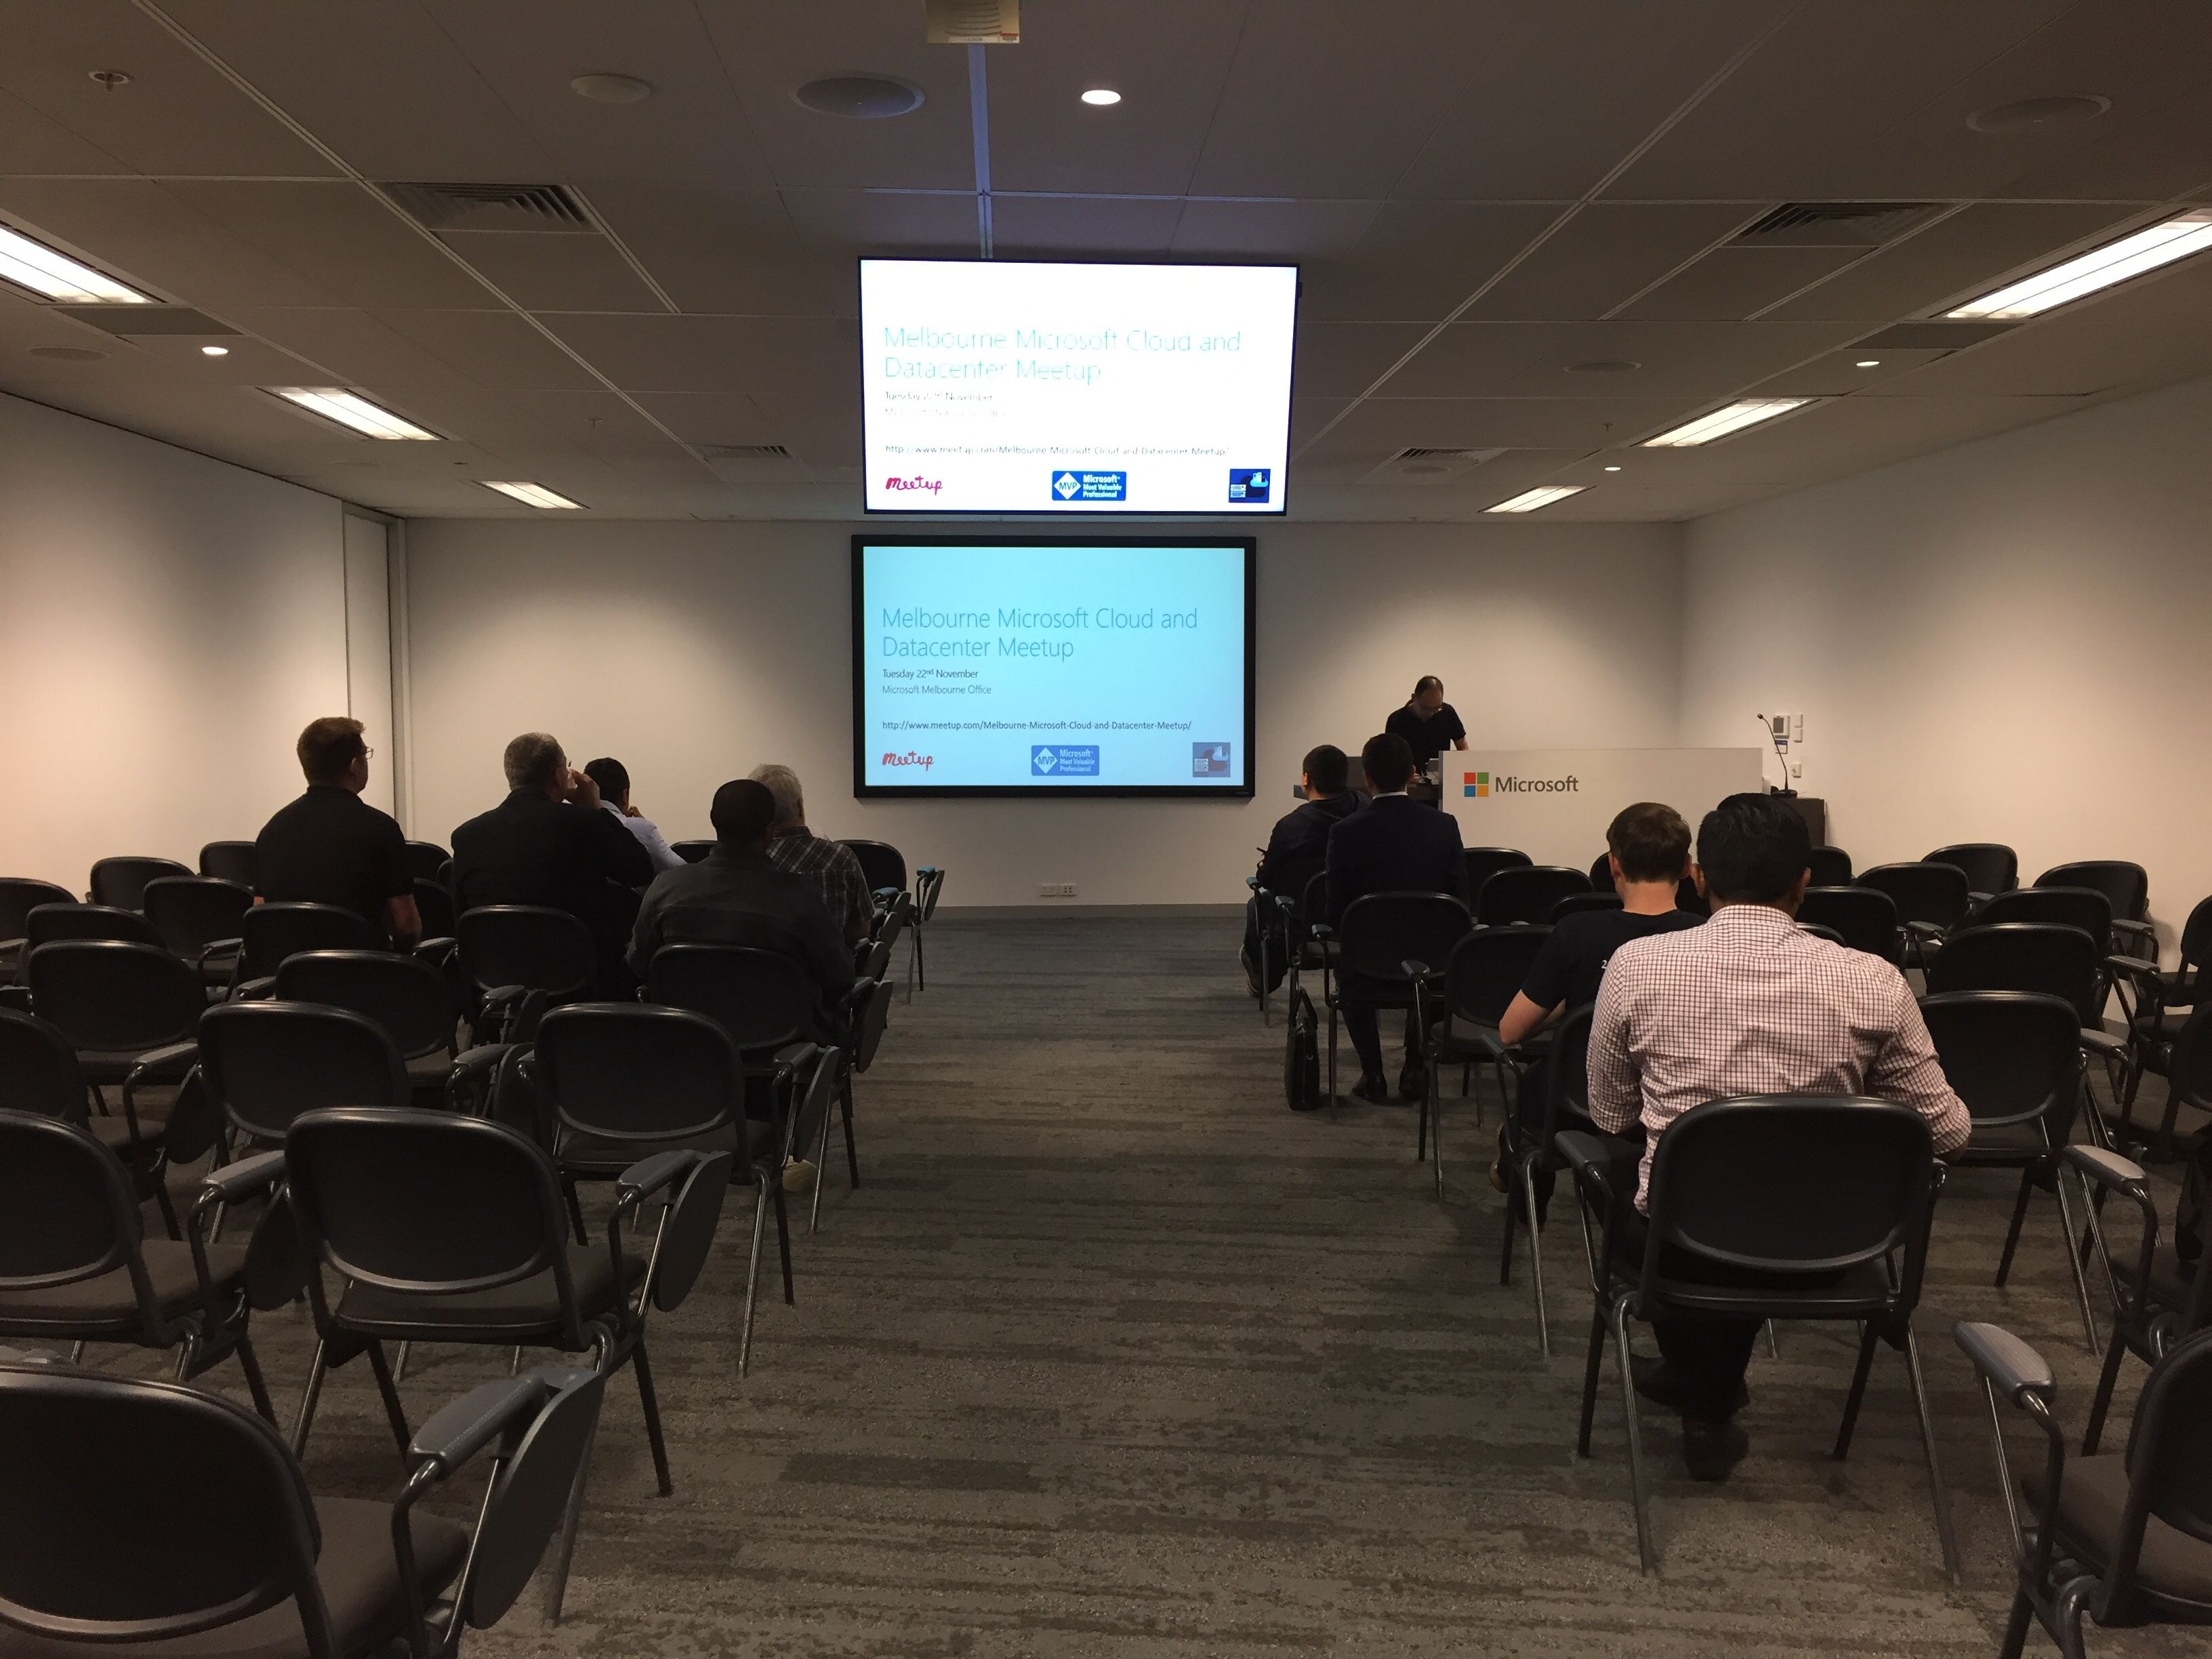 Melbourne Microsoft Cloud and Datacenter Meetup